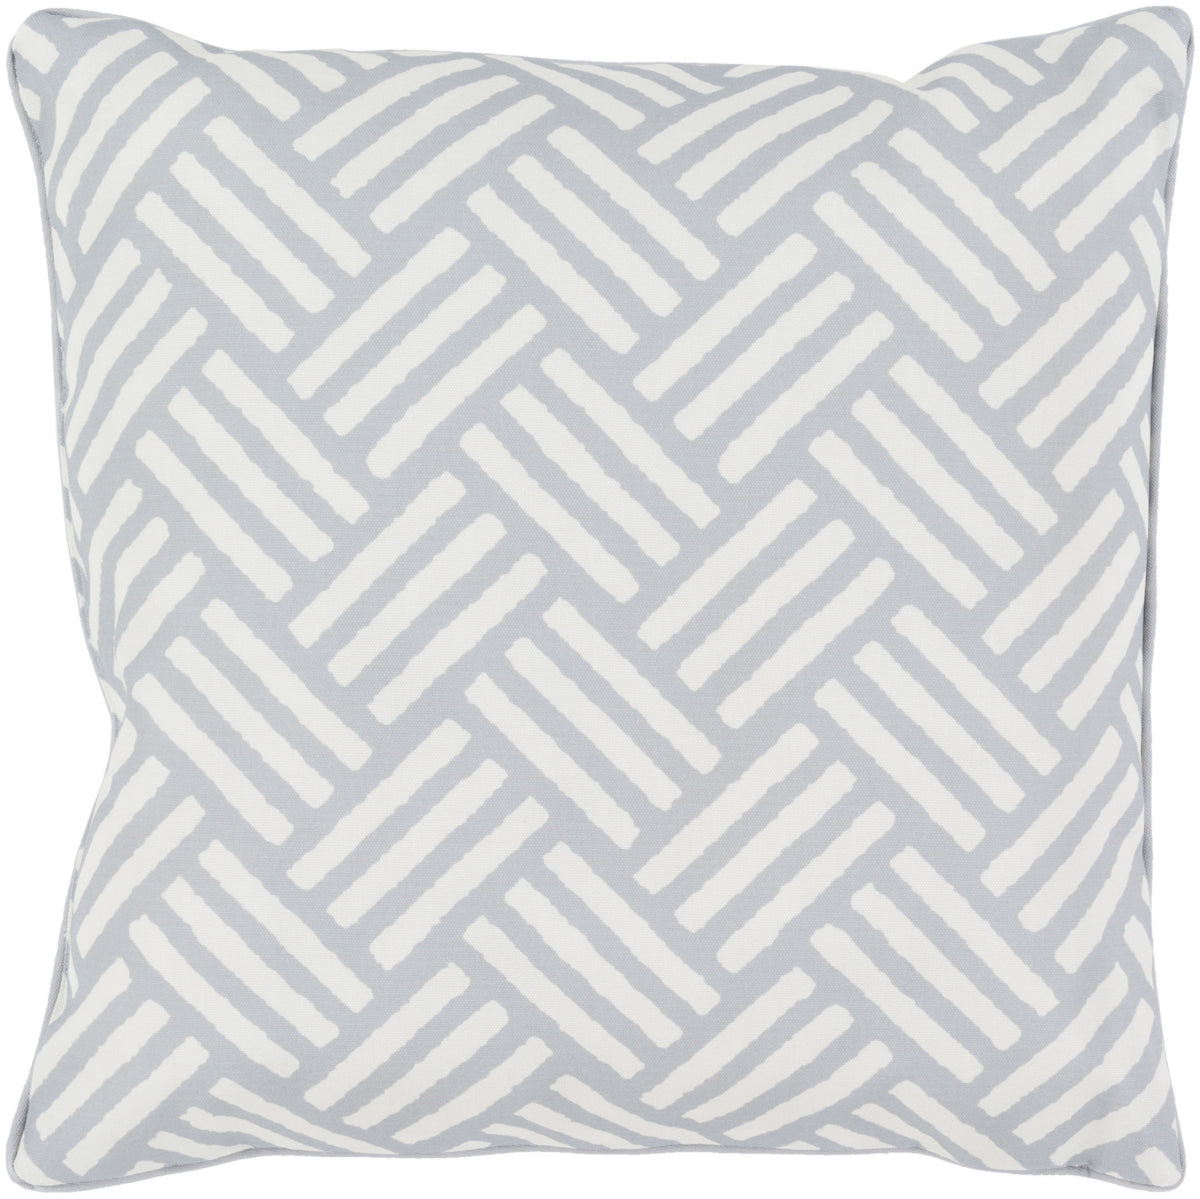 Surya Basketweave BW005 Pillow main image